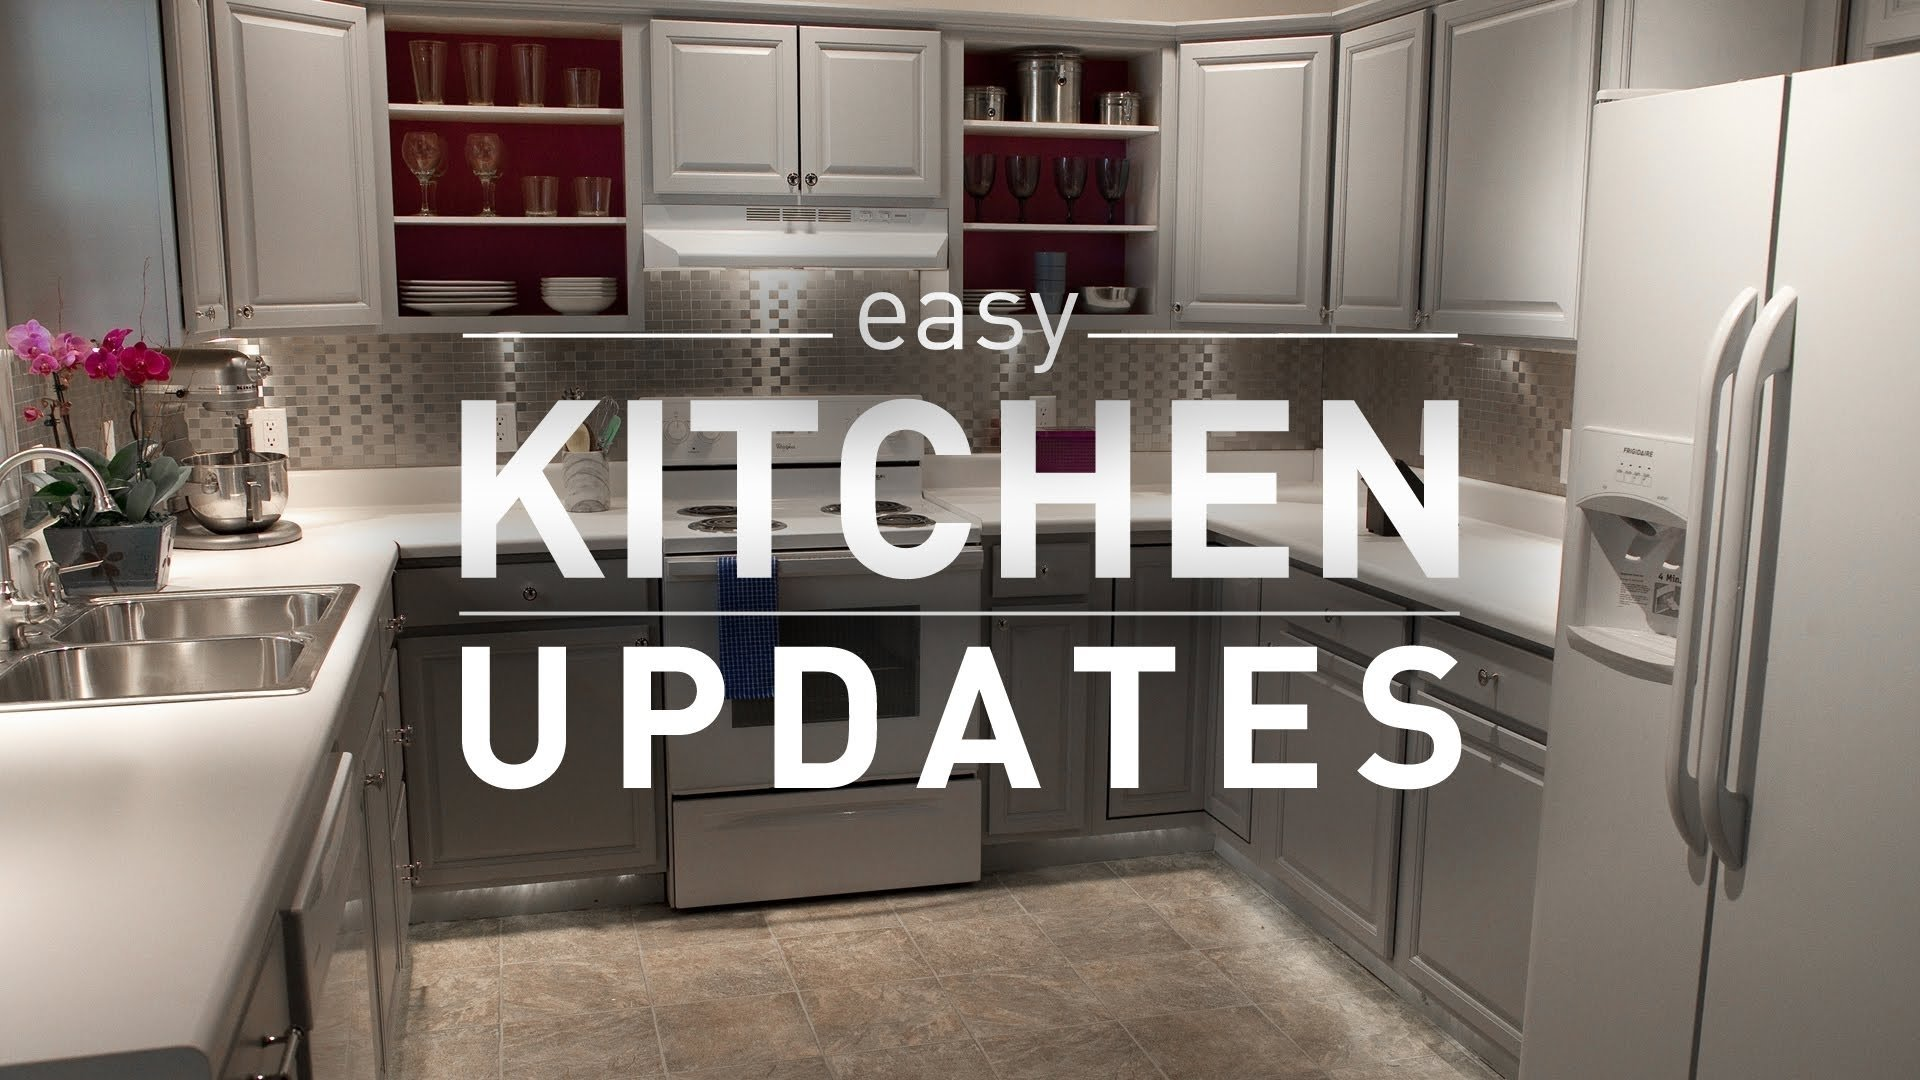 10 Fantastic Kitchen Makeover Ideas On A Budget budget friendly kitchen makeover from lowes youtube 2020